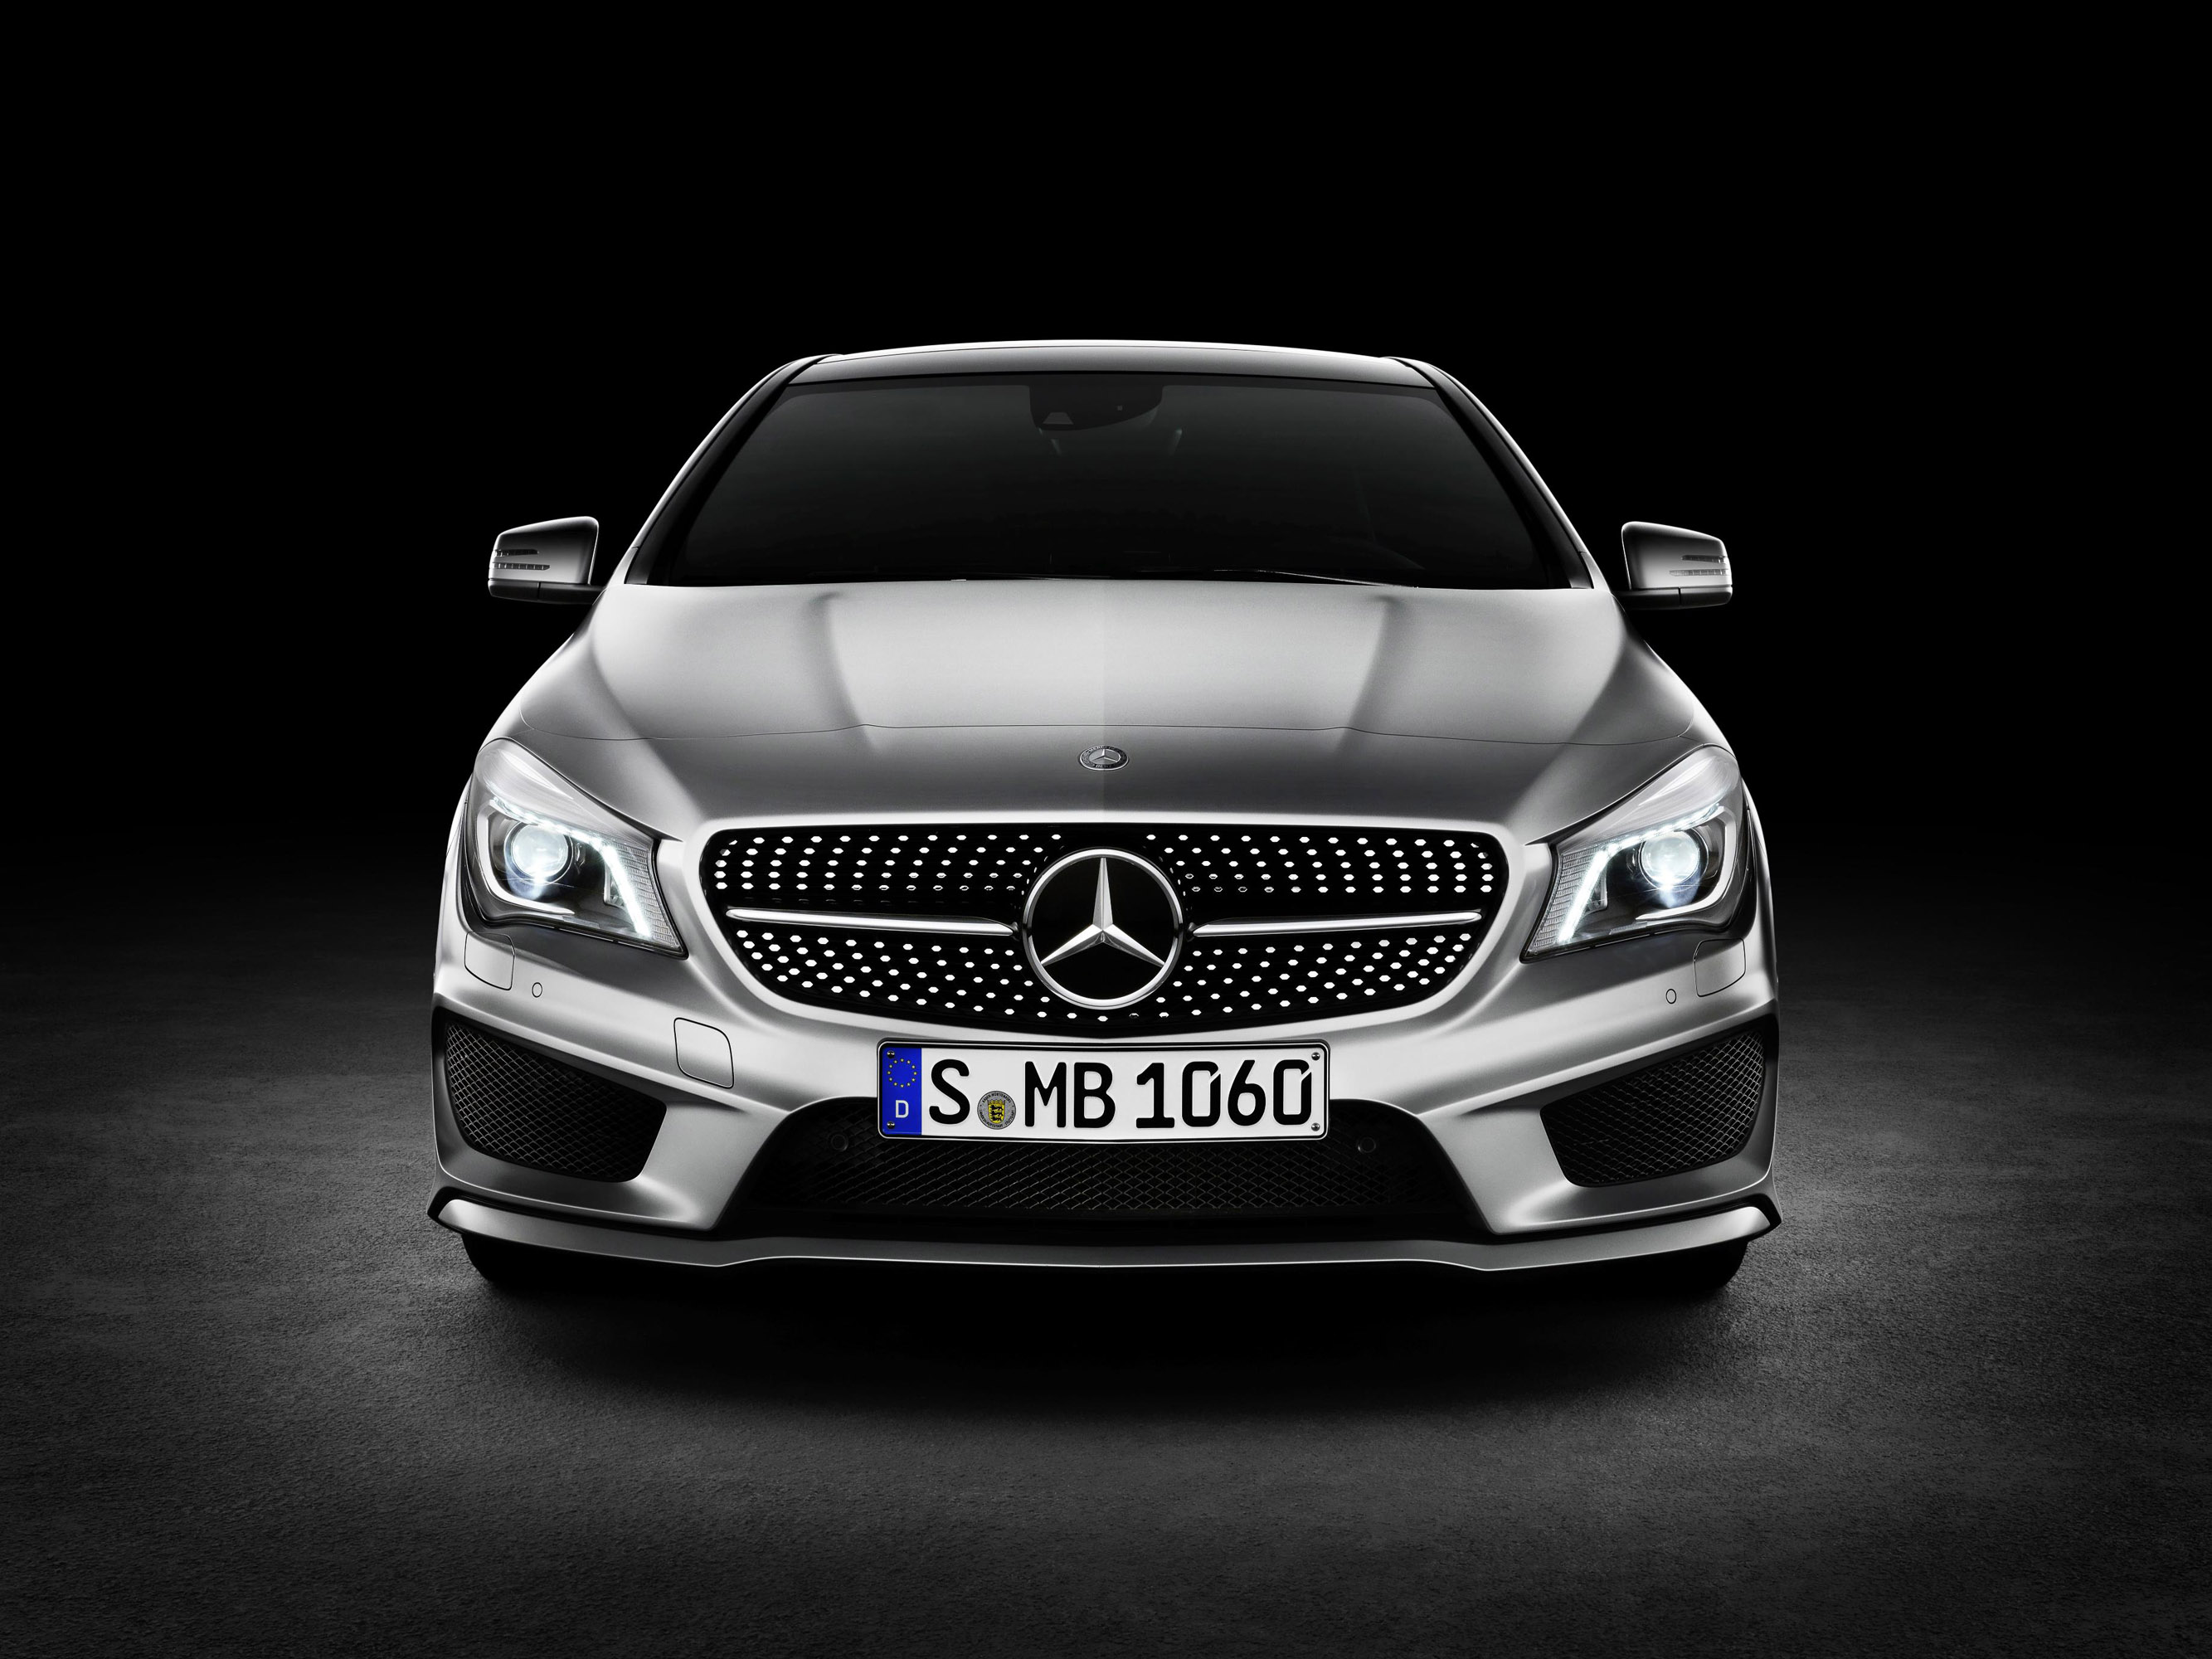 2014 cla review release date price and specs for 2014 mercedes benz cla class price